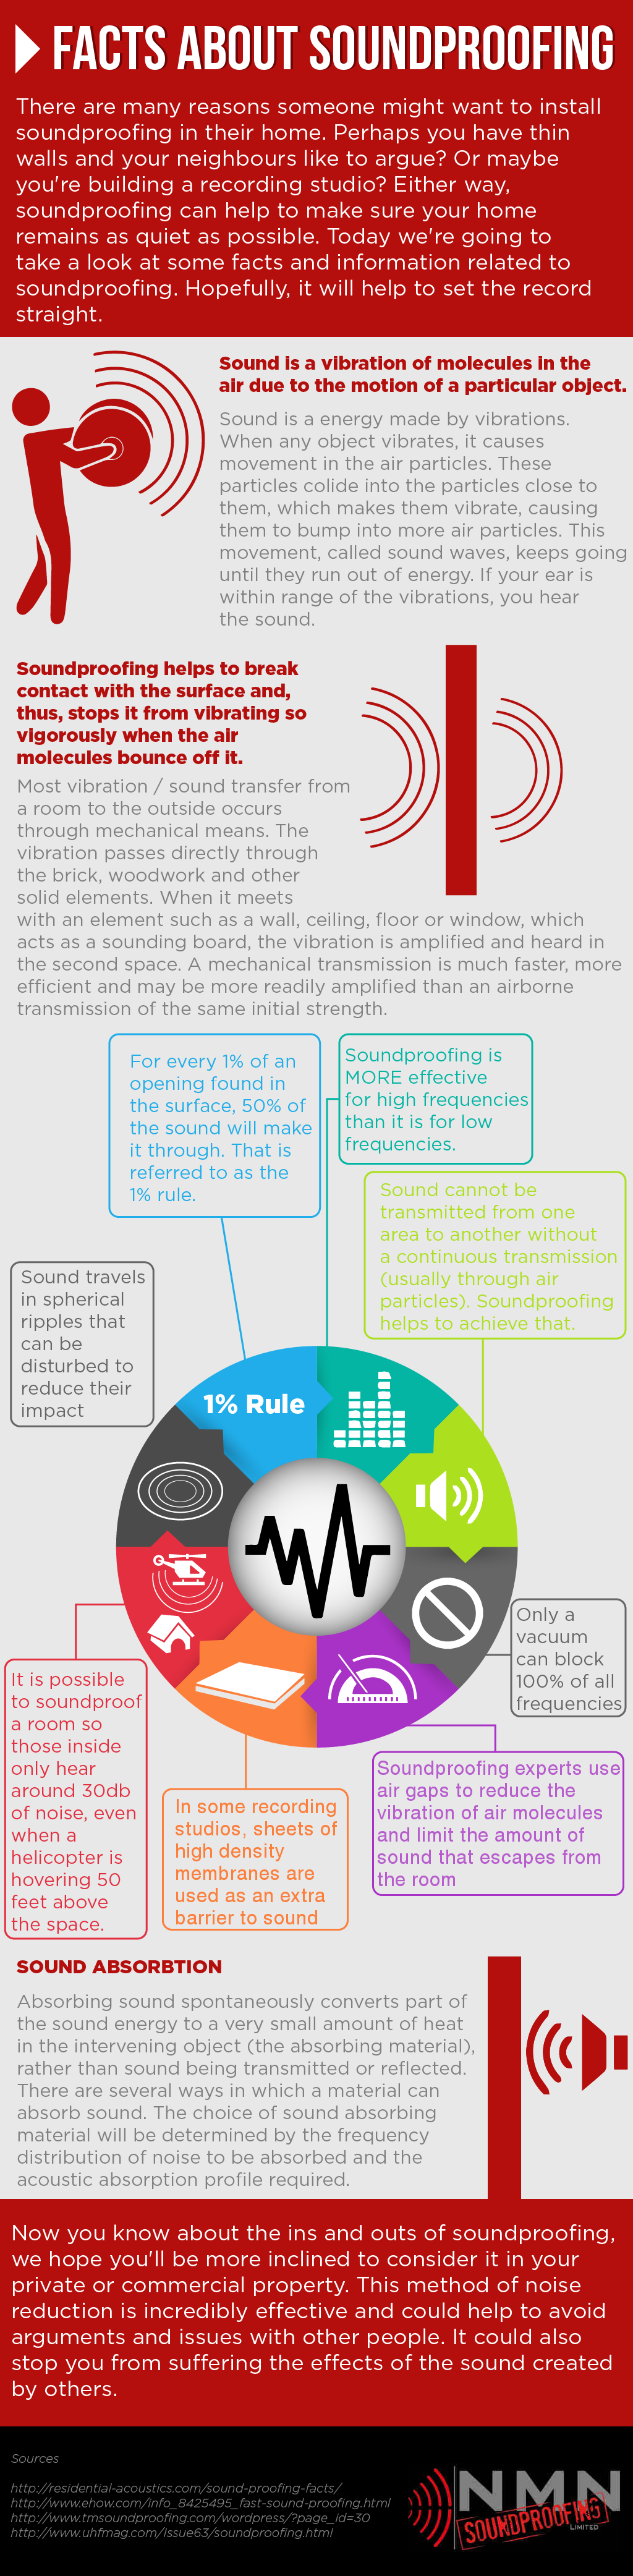 Soundproofing Facts